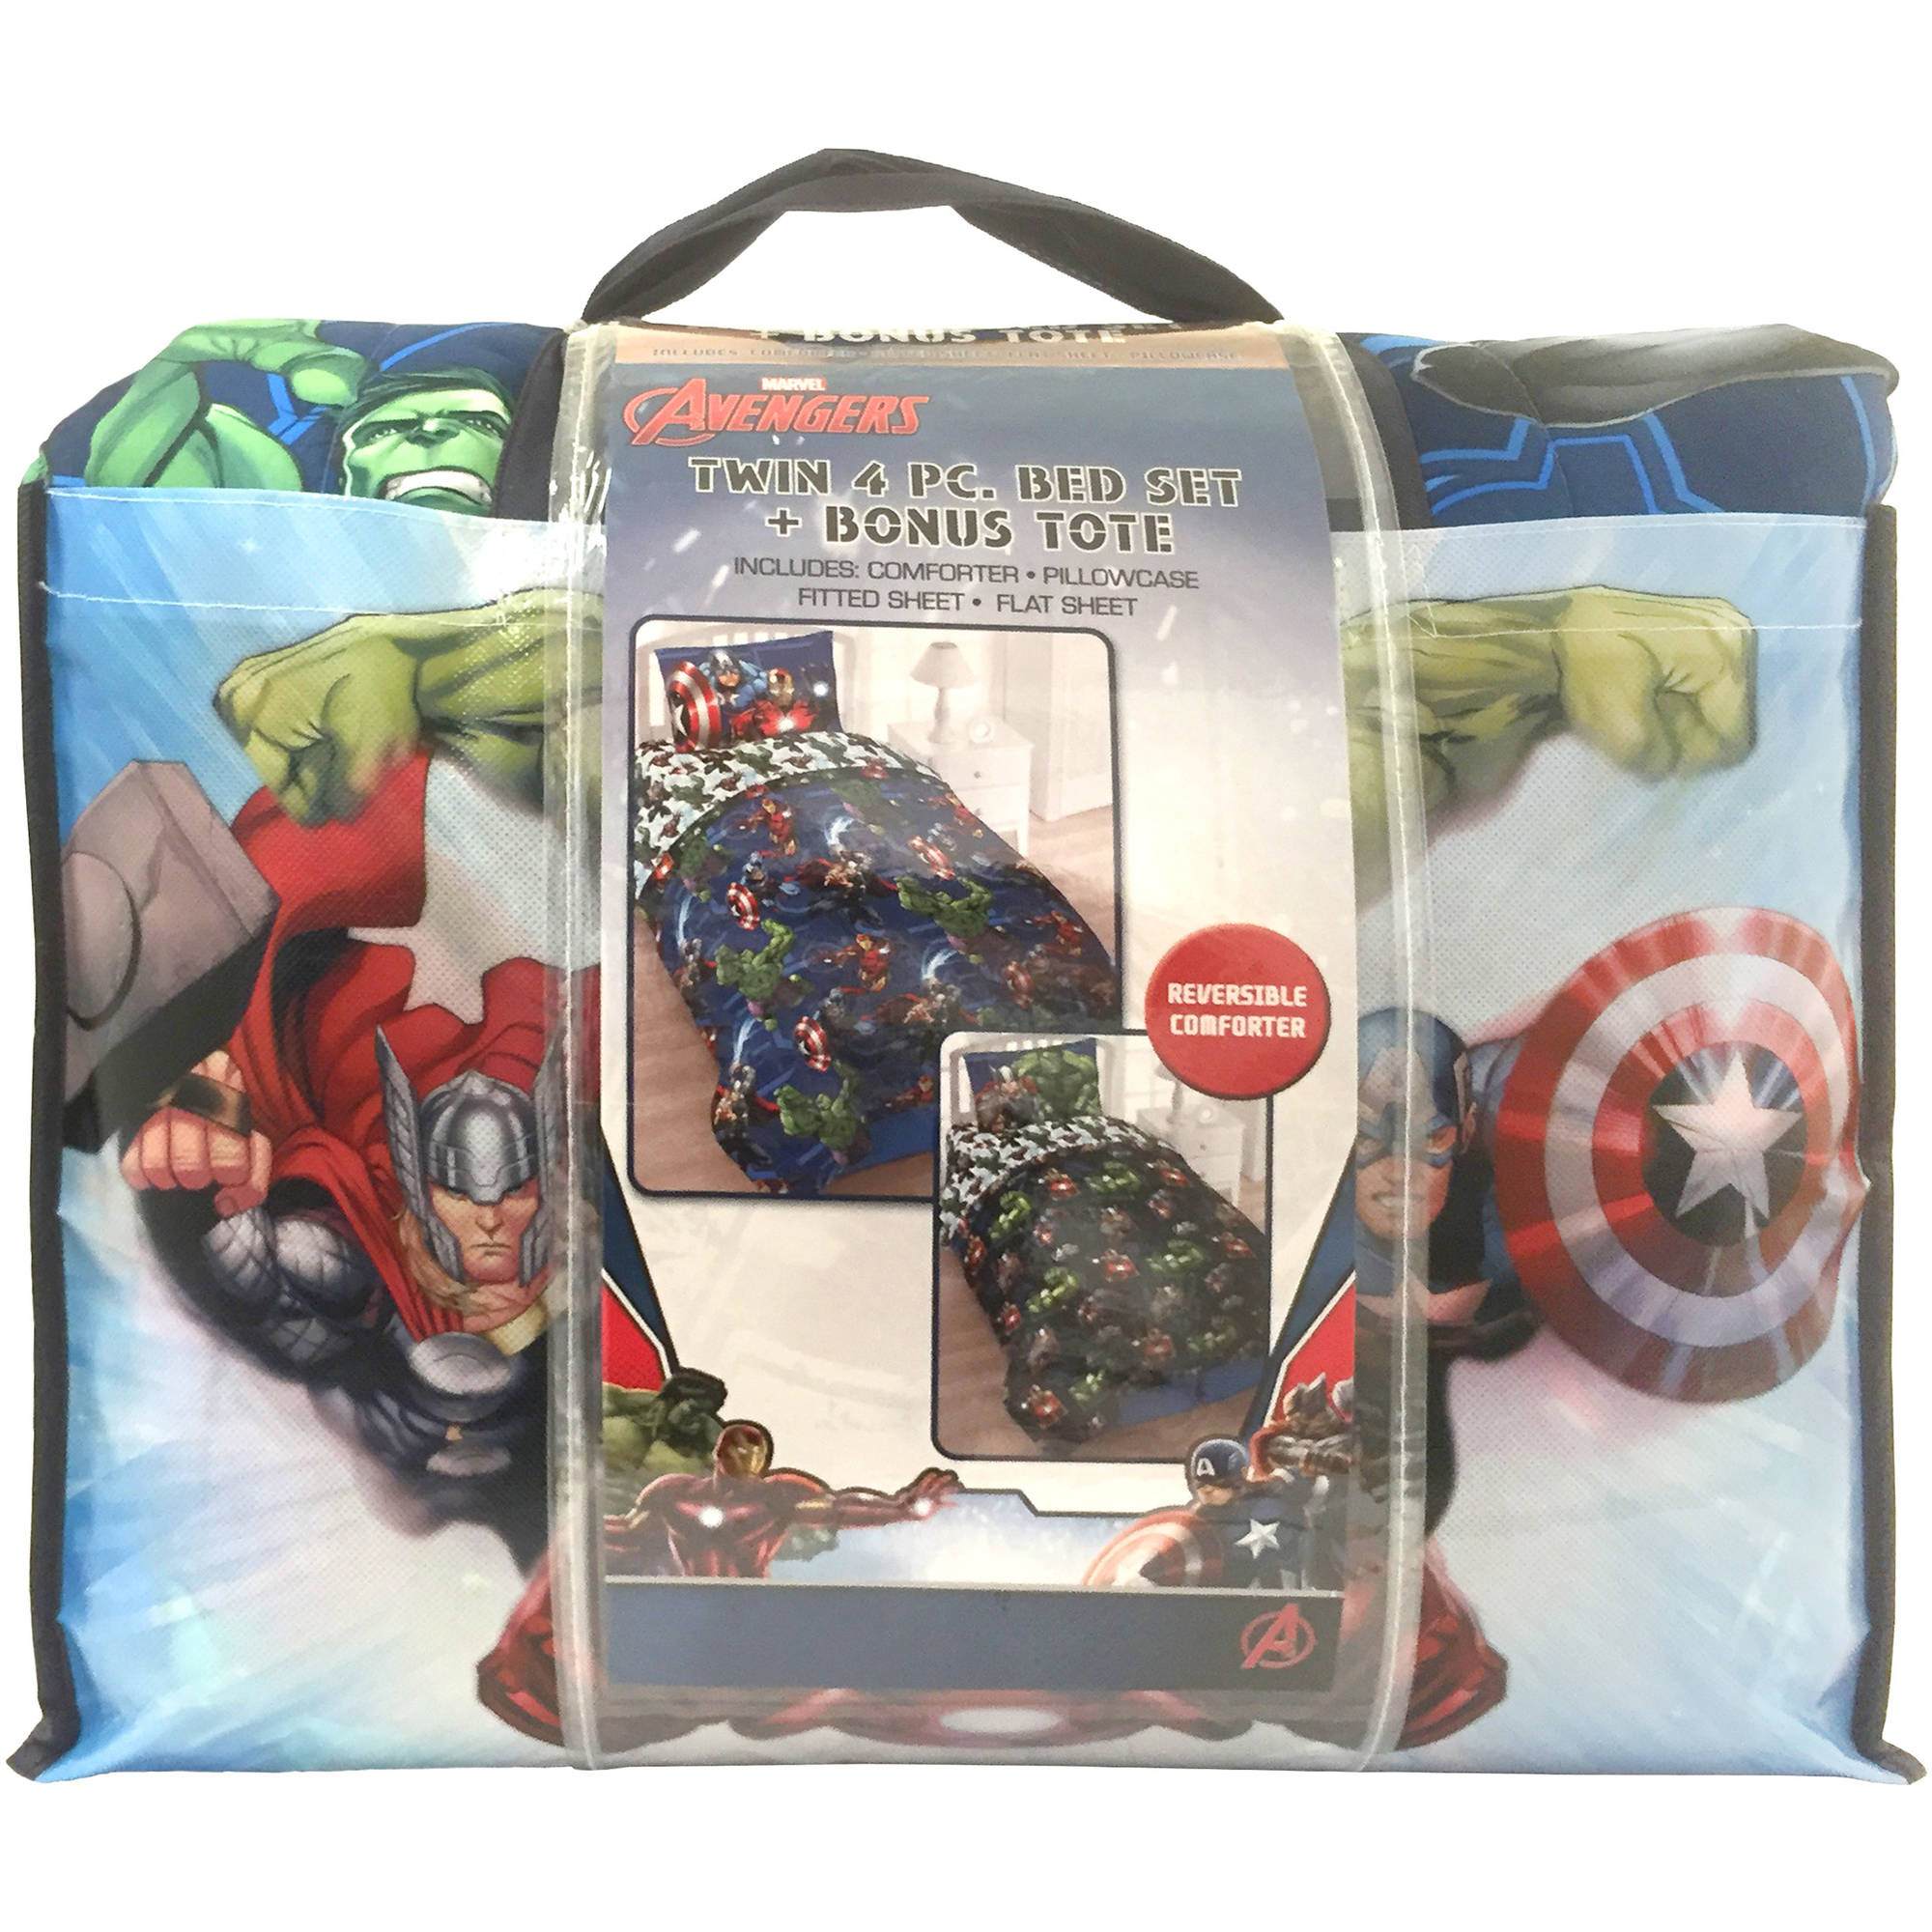 Avengers bedding set twin - Marvel Avengers Bed In A Bag 5 Piece Twin Bedding Set With Bonus Tote Walmart Com